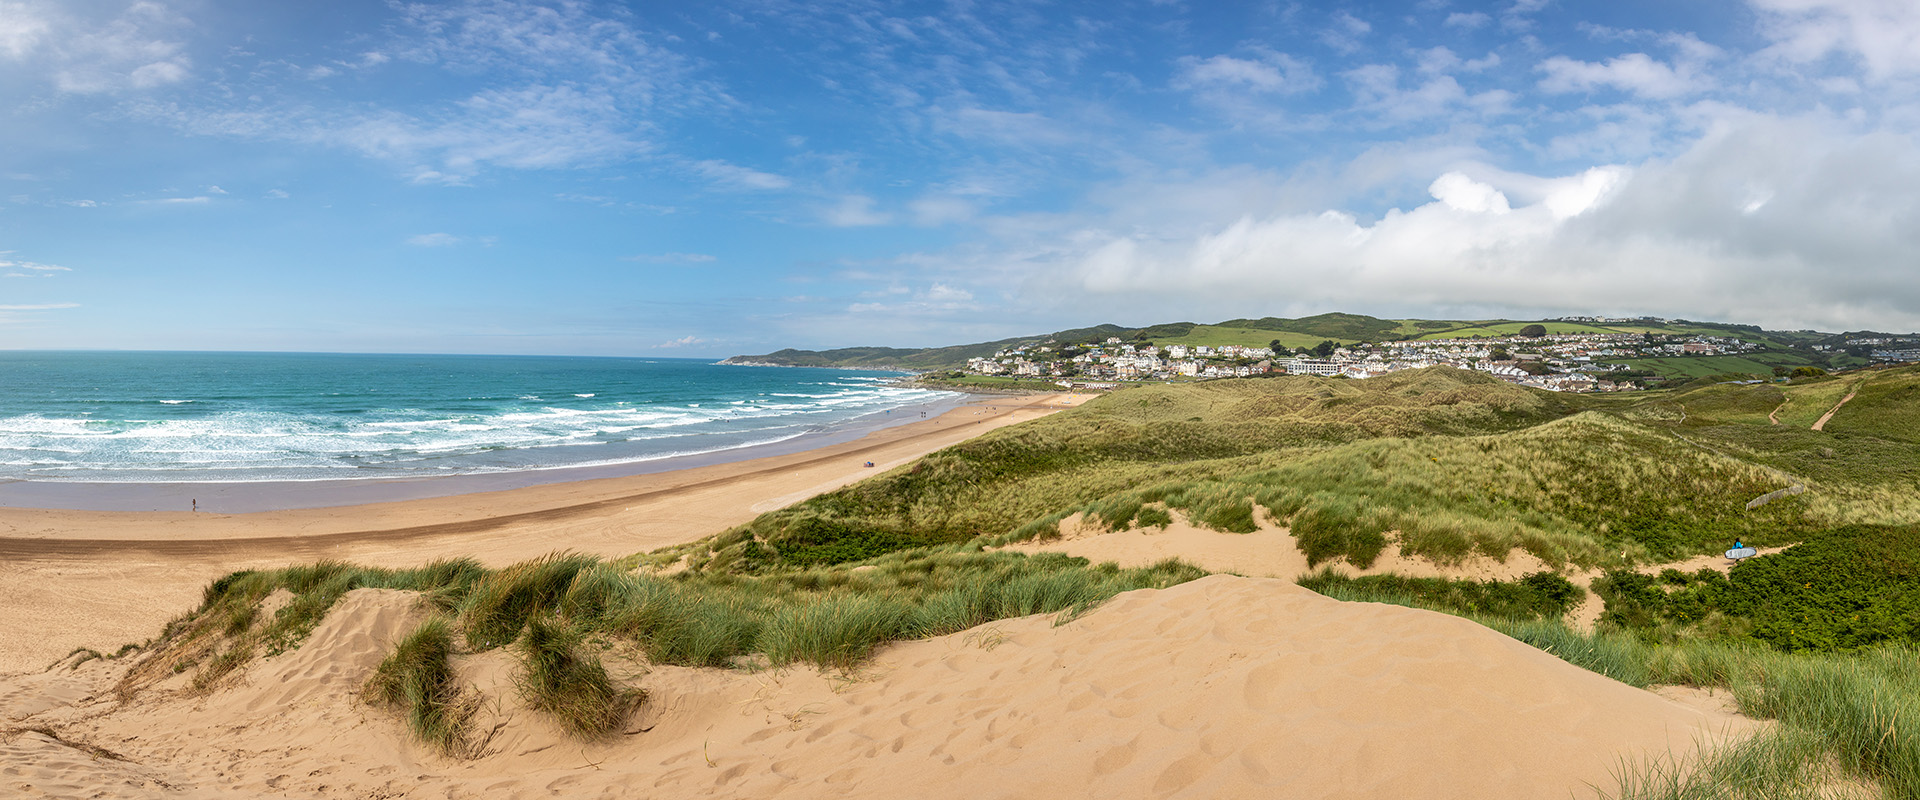 A sunny beach in the South West England